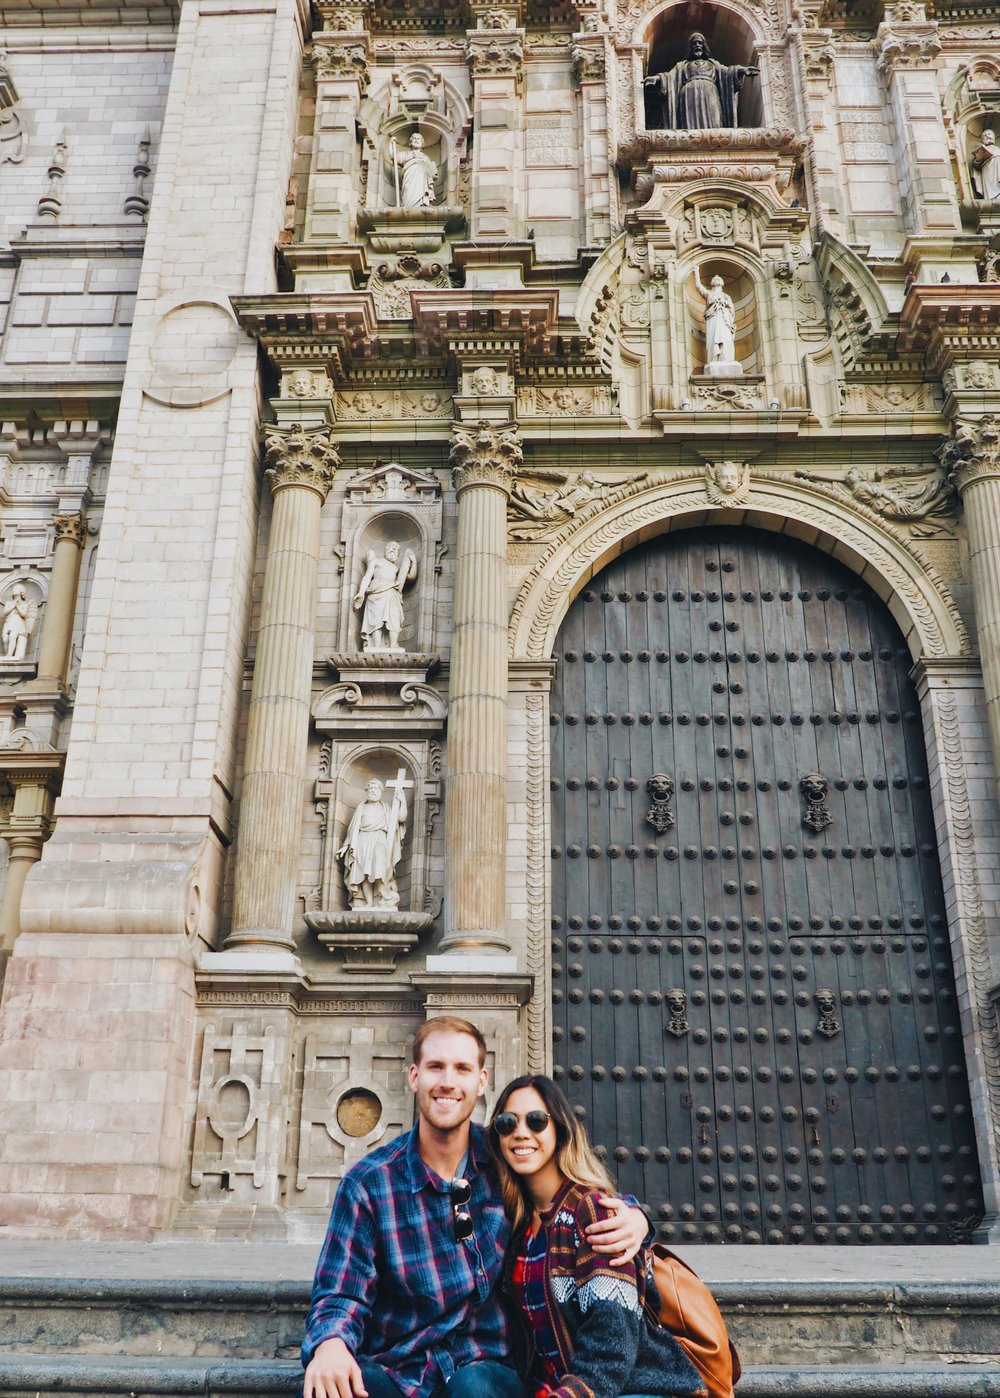 Basilica Cathedral, Plaza de Armas of Lima, Peru